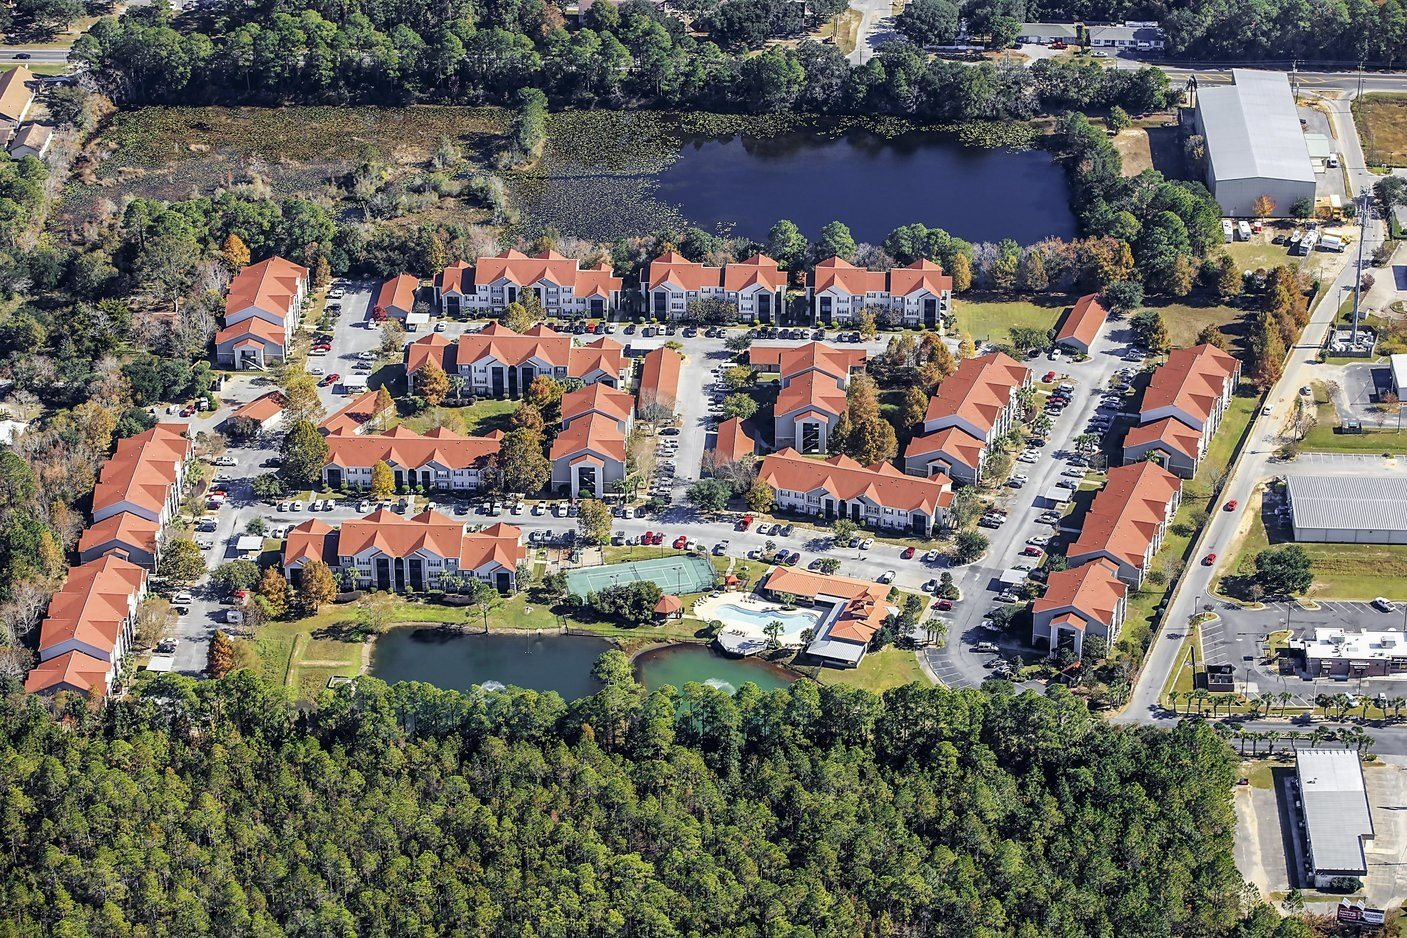 Panoramic View of Fairfield Lakes Apartments